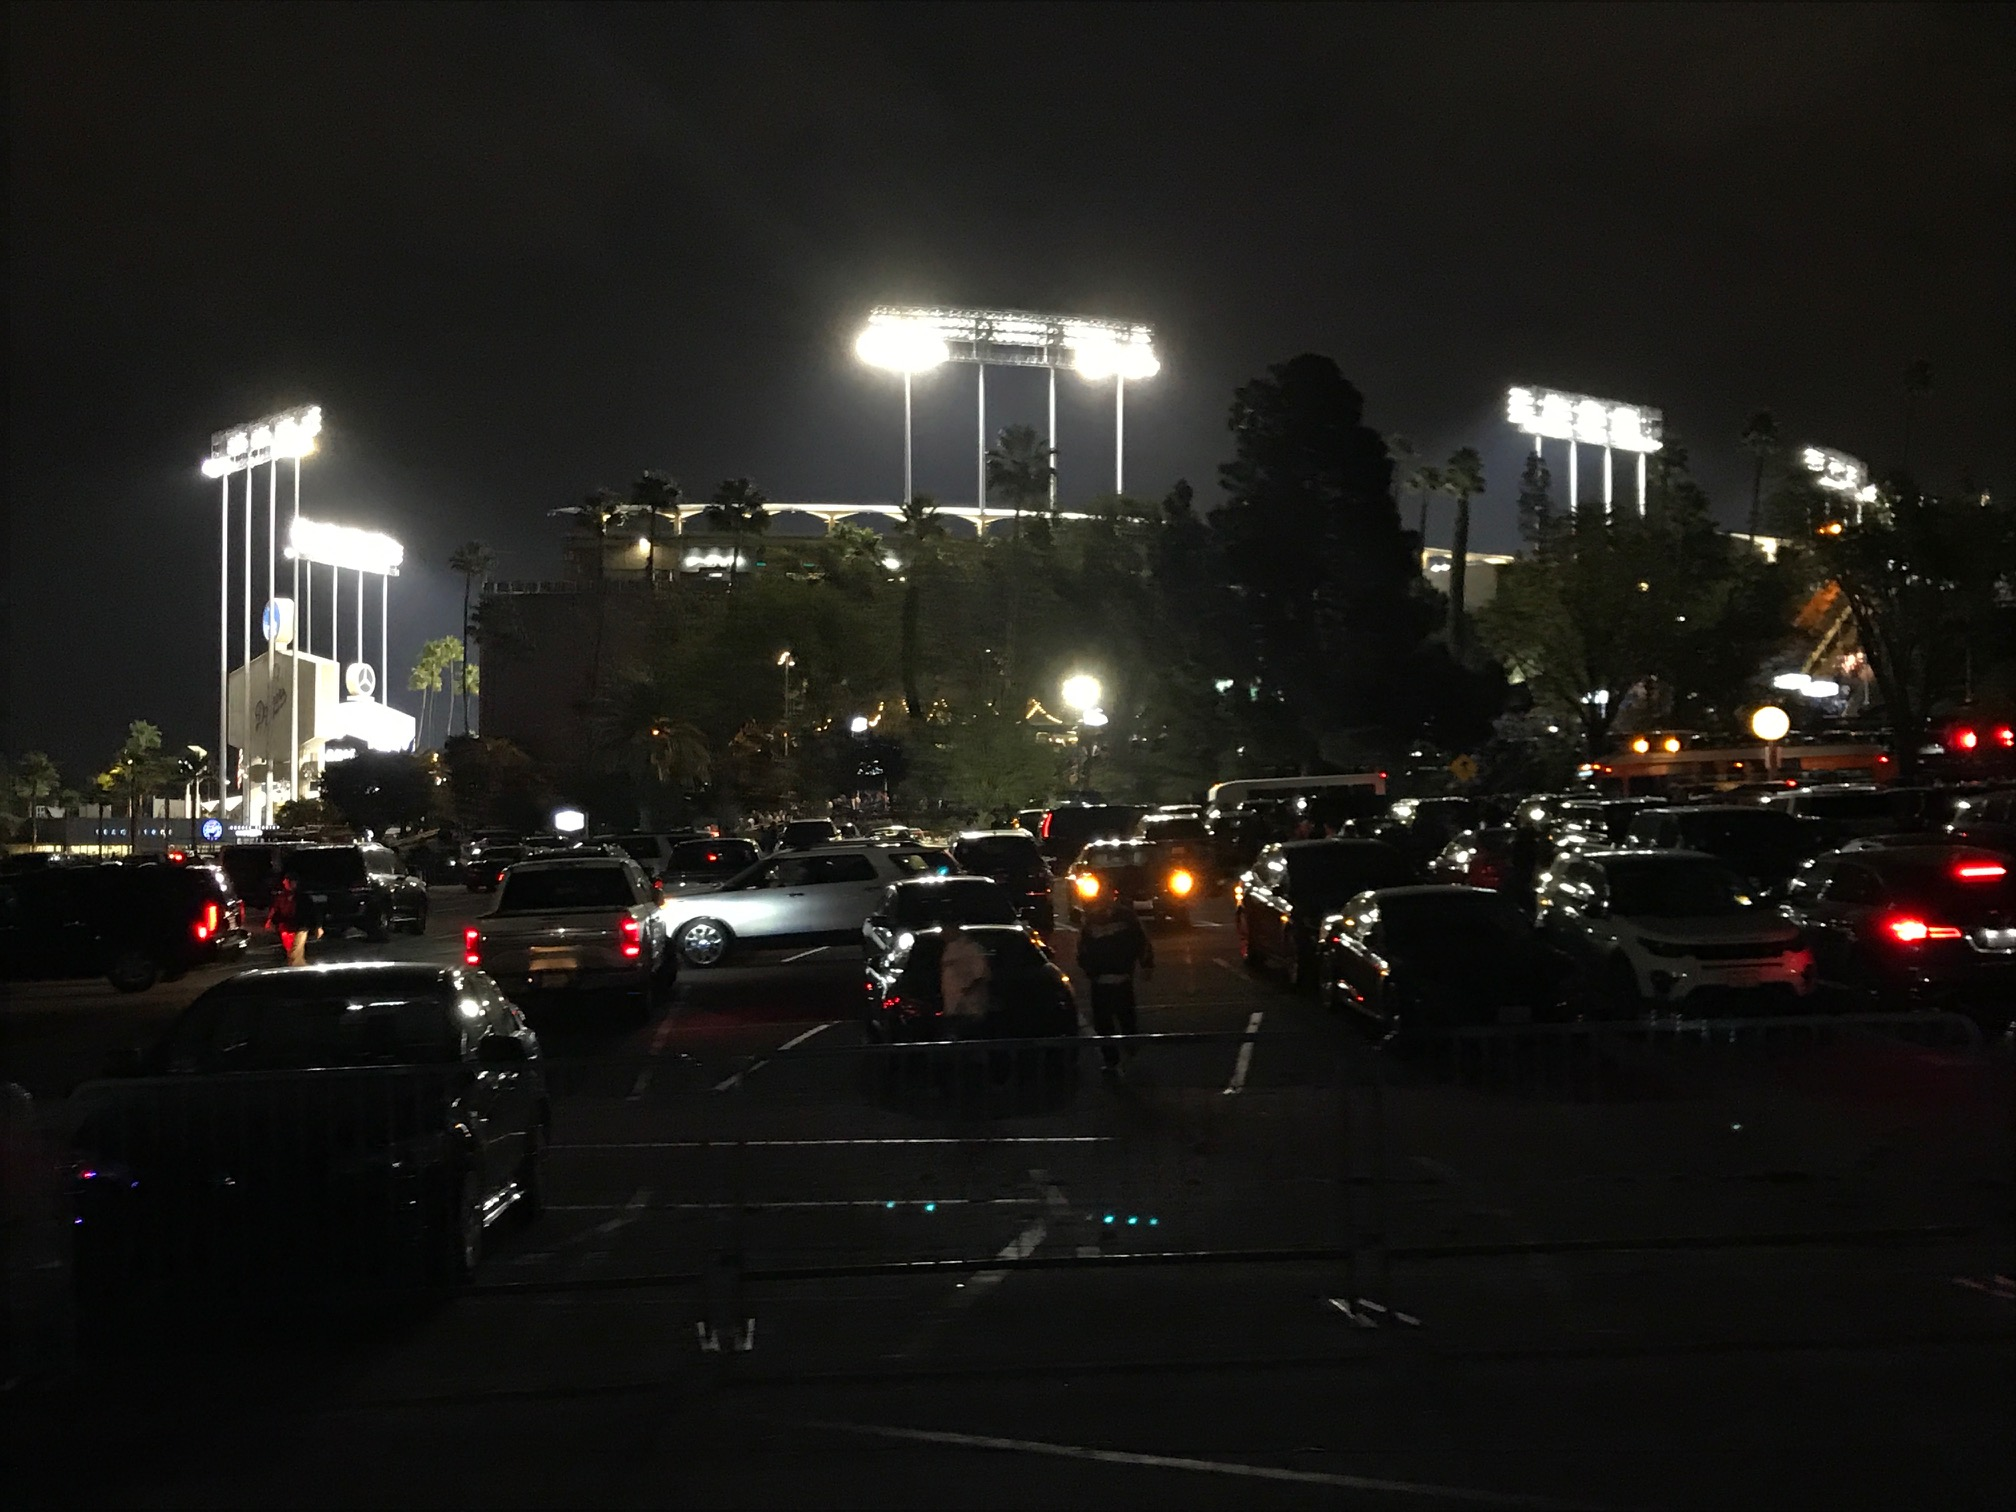 Dodger Stadium, minutes after the end of Game 7 of the 2017 World Series